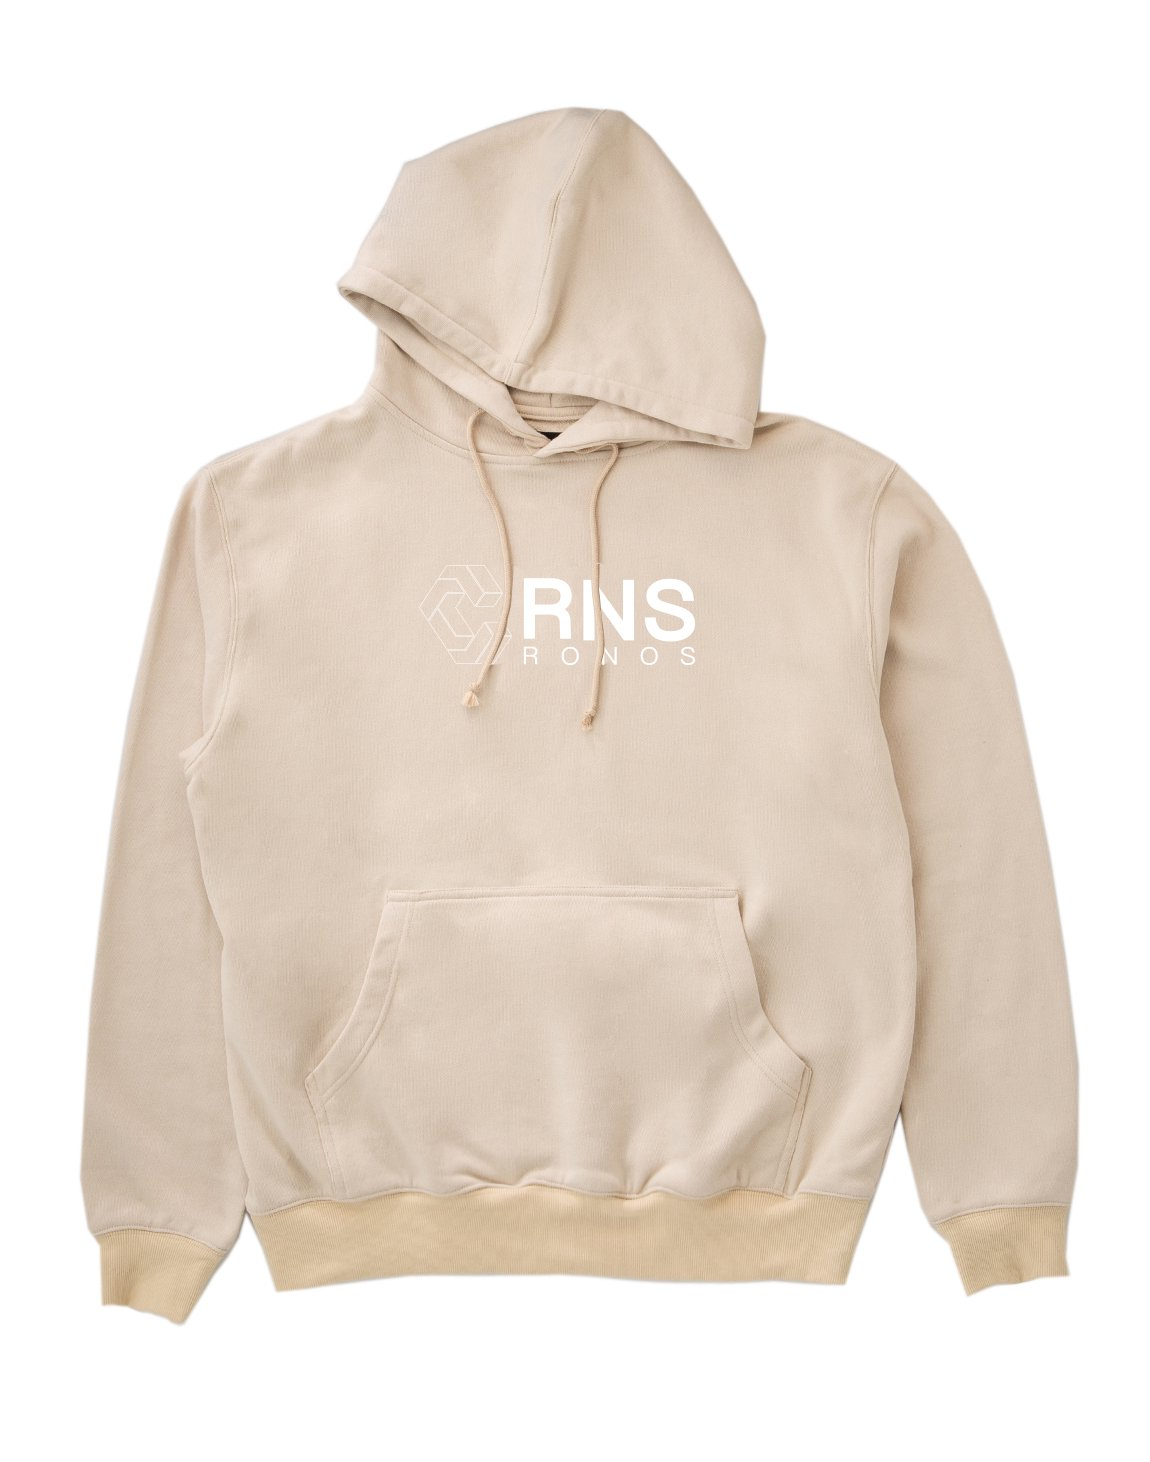 <img class='new_mark_img1' src='https://img.shop-pro.jp/img/new/icons1.gif' style='border:none;display:inline;margin:0px;padding:0px;width:auto;' />CRNS FONT LOGO  PARKA 【BEIGE】